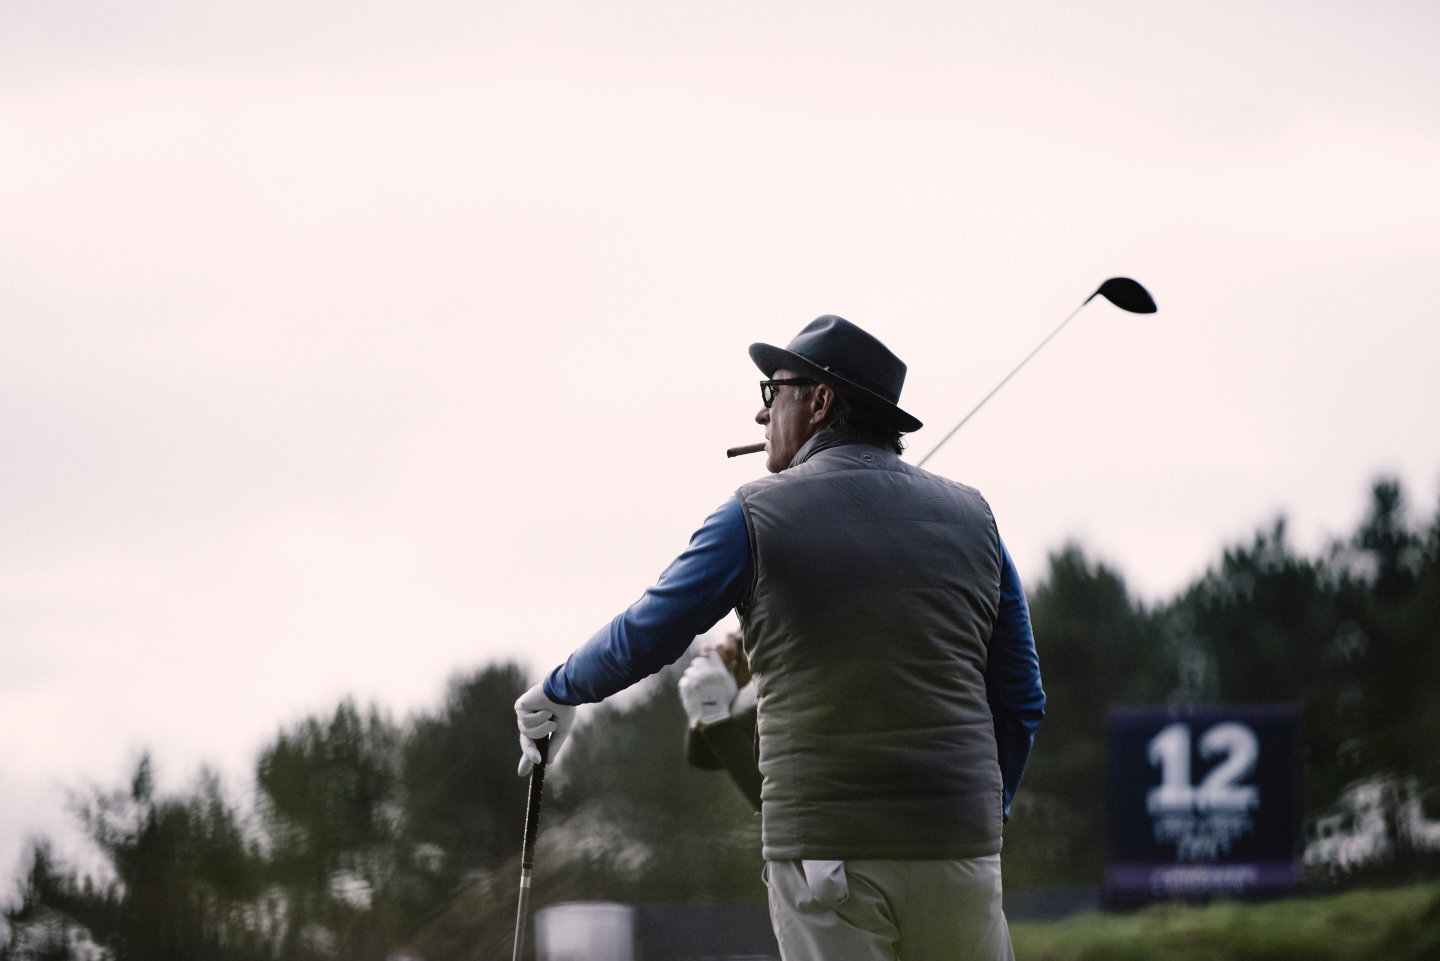 2016_BM_DunhillMasters_DAY1-359.jpg